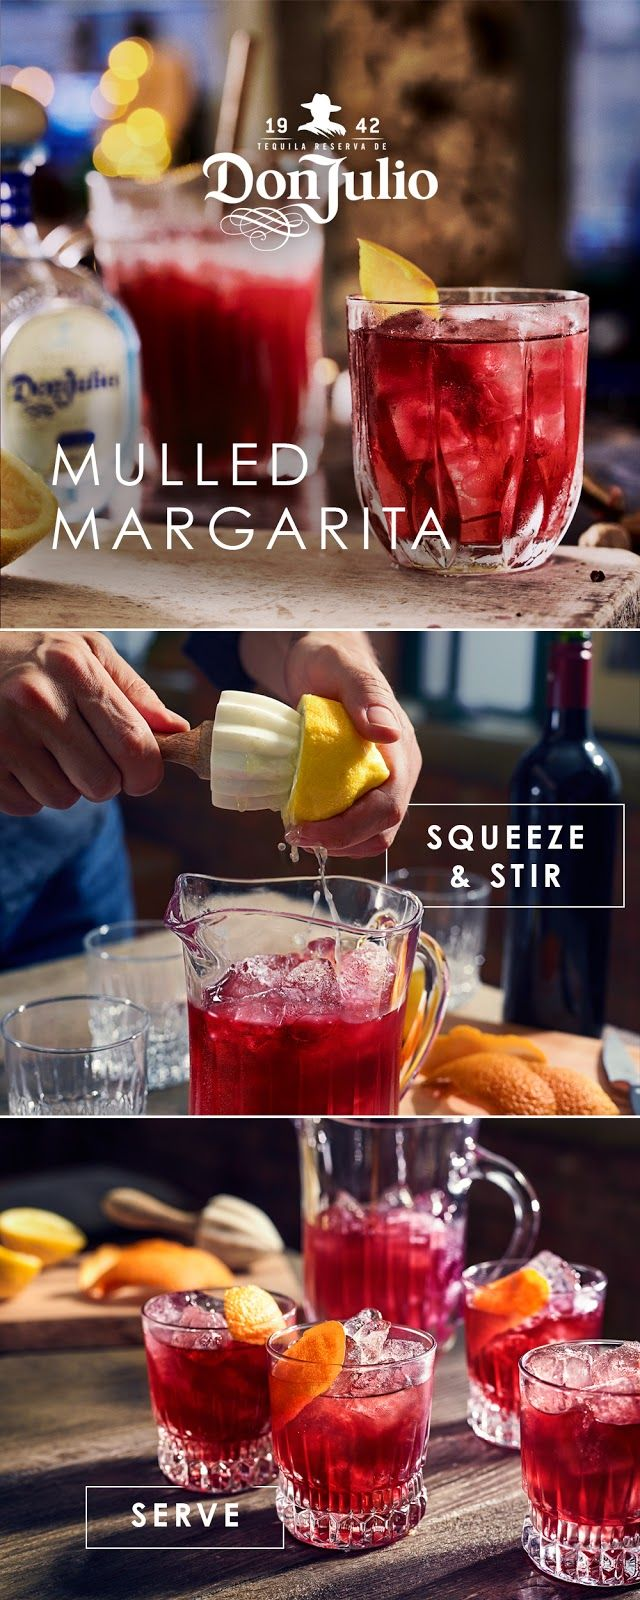 Crisp Blanco, sweet Merlot, and refreshing lemon juice – it's a match. Share the Don Julio Mulled Margarita with the ones you love this #ValentinesDay.    Start by filling a large jug with ice. Then add 7 oz Don Julio Blanco, 7 oz Merlot, 2.5 oz mulled spice syrup and 3.5 oz of freshly squeezed lemon juice, and stir. Serve in tumblers and garnish with orange peel, twisting the peel over the top of the drink to release the oils. Serves 8.